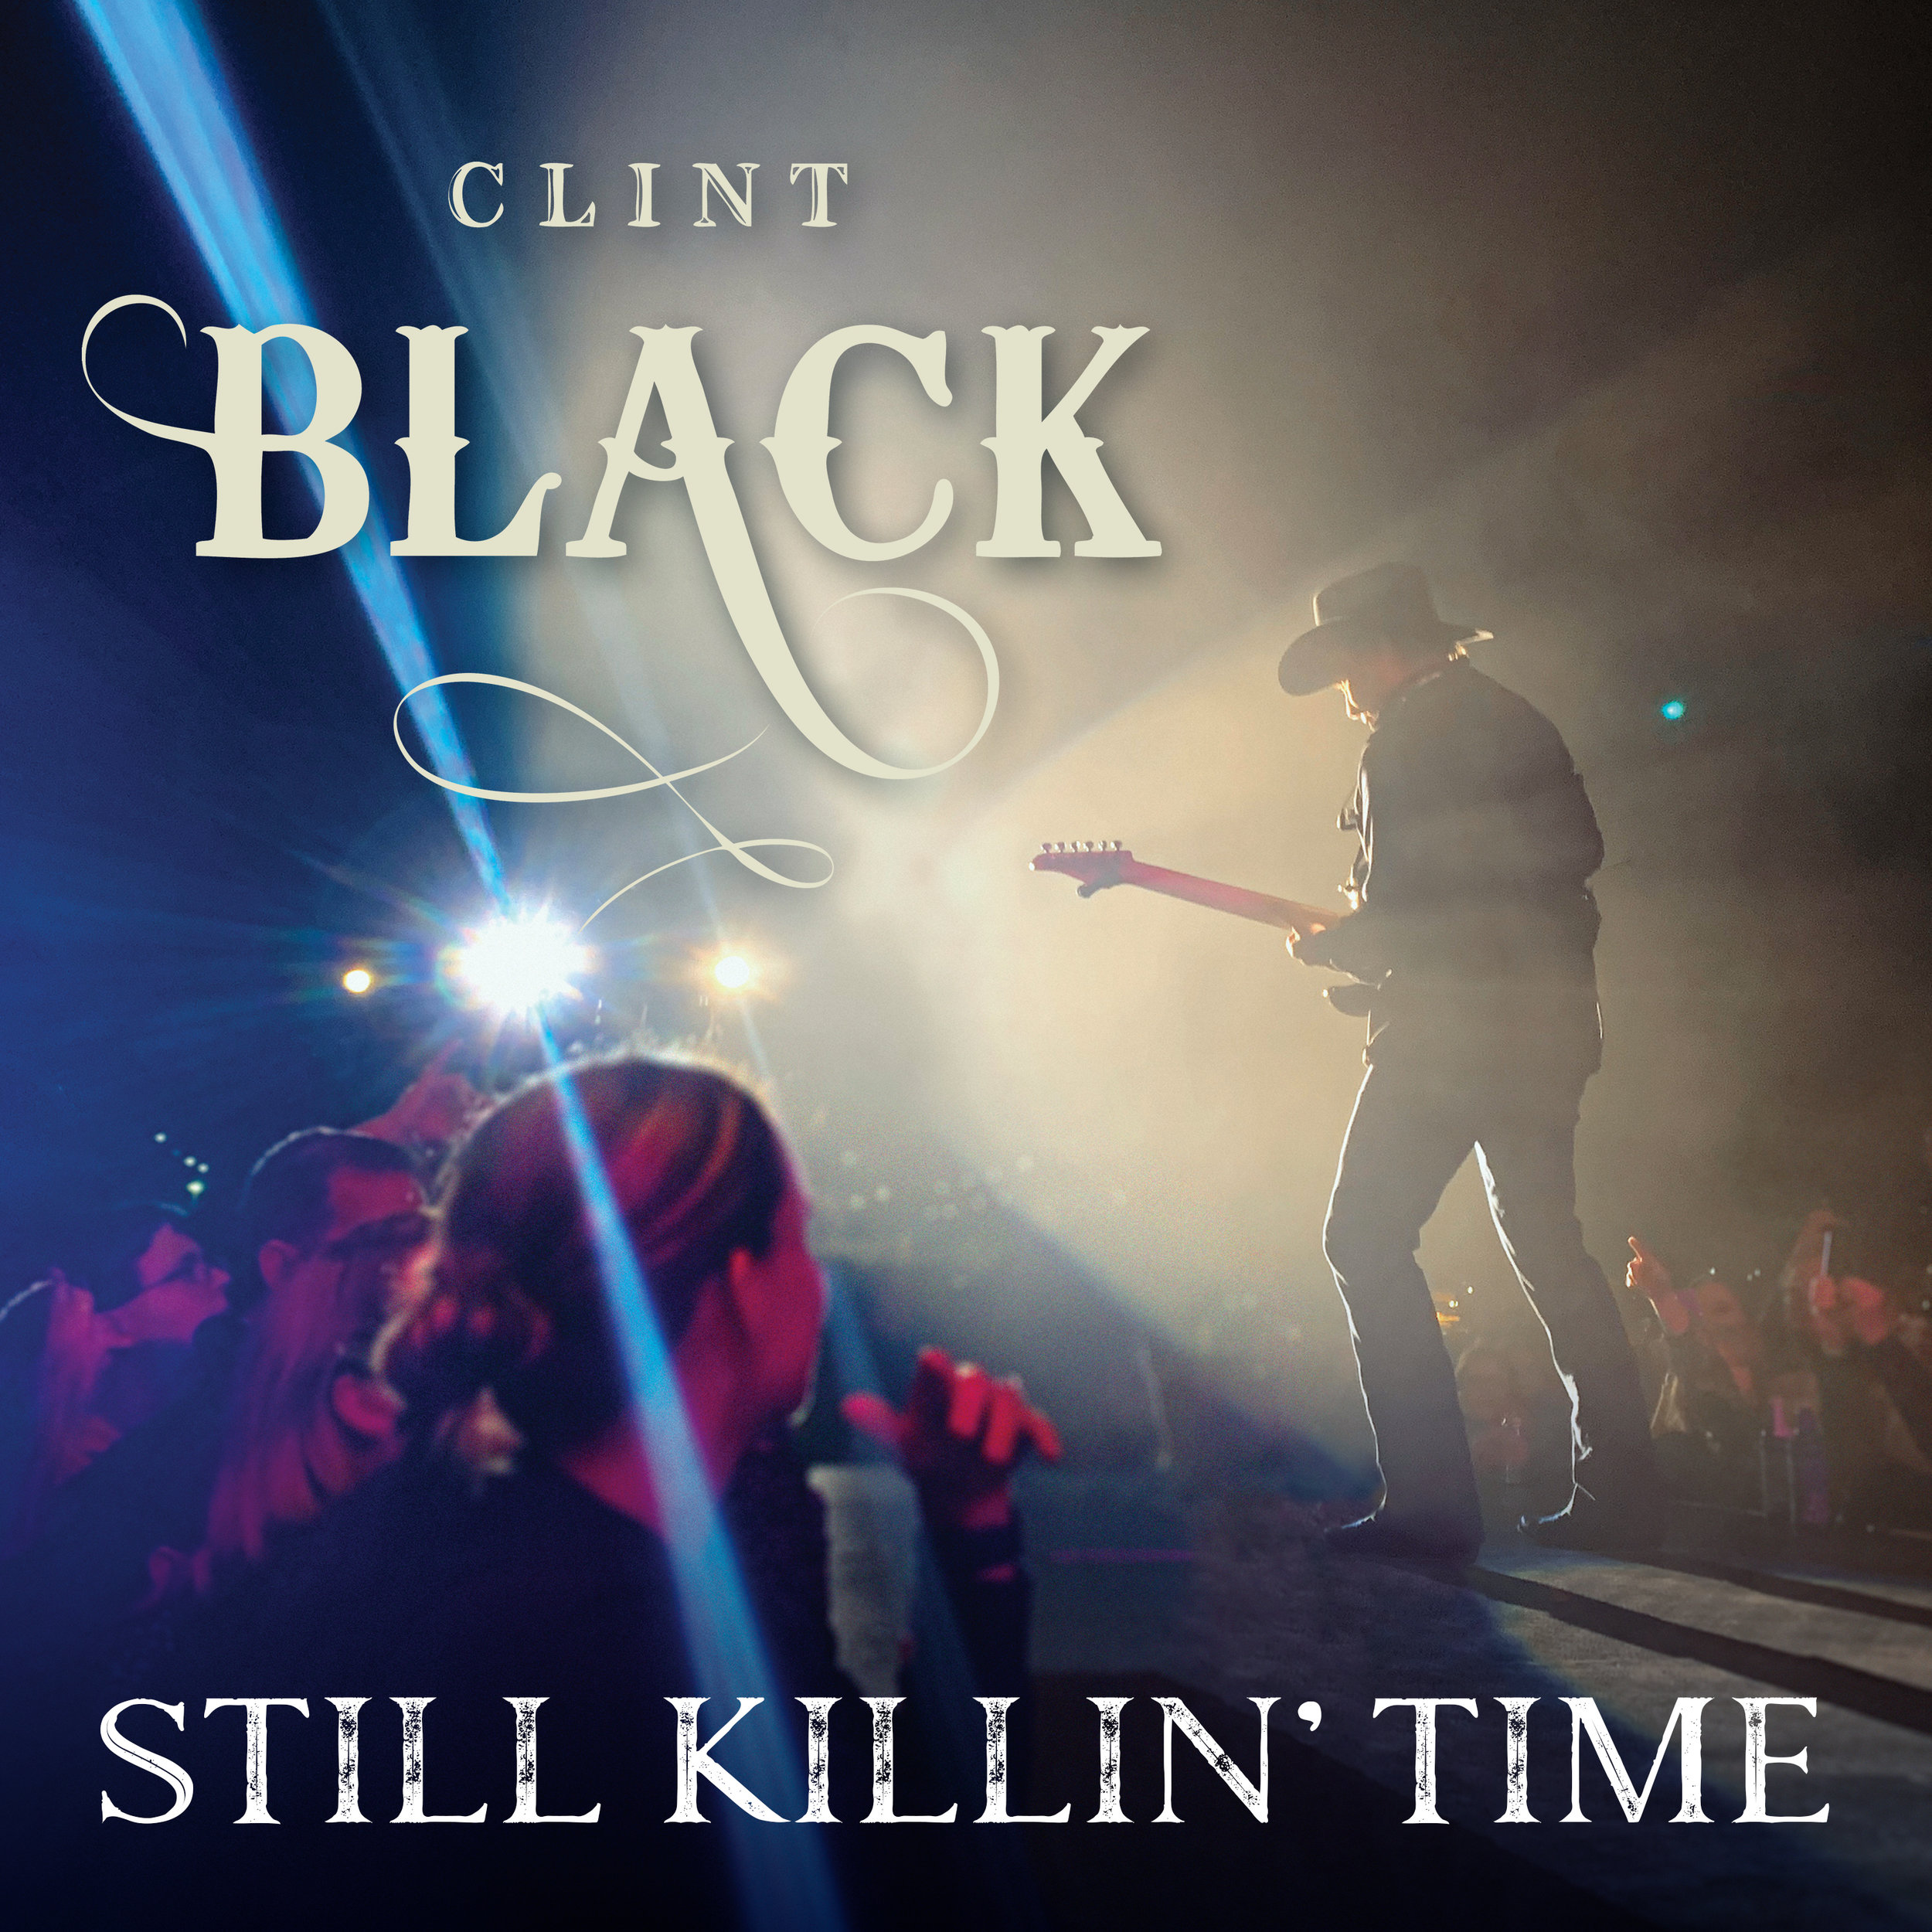 clint-black-still-killing